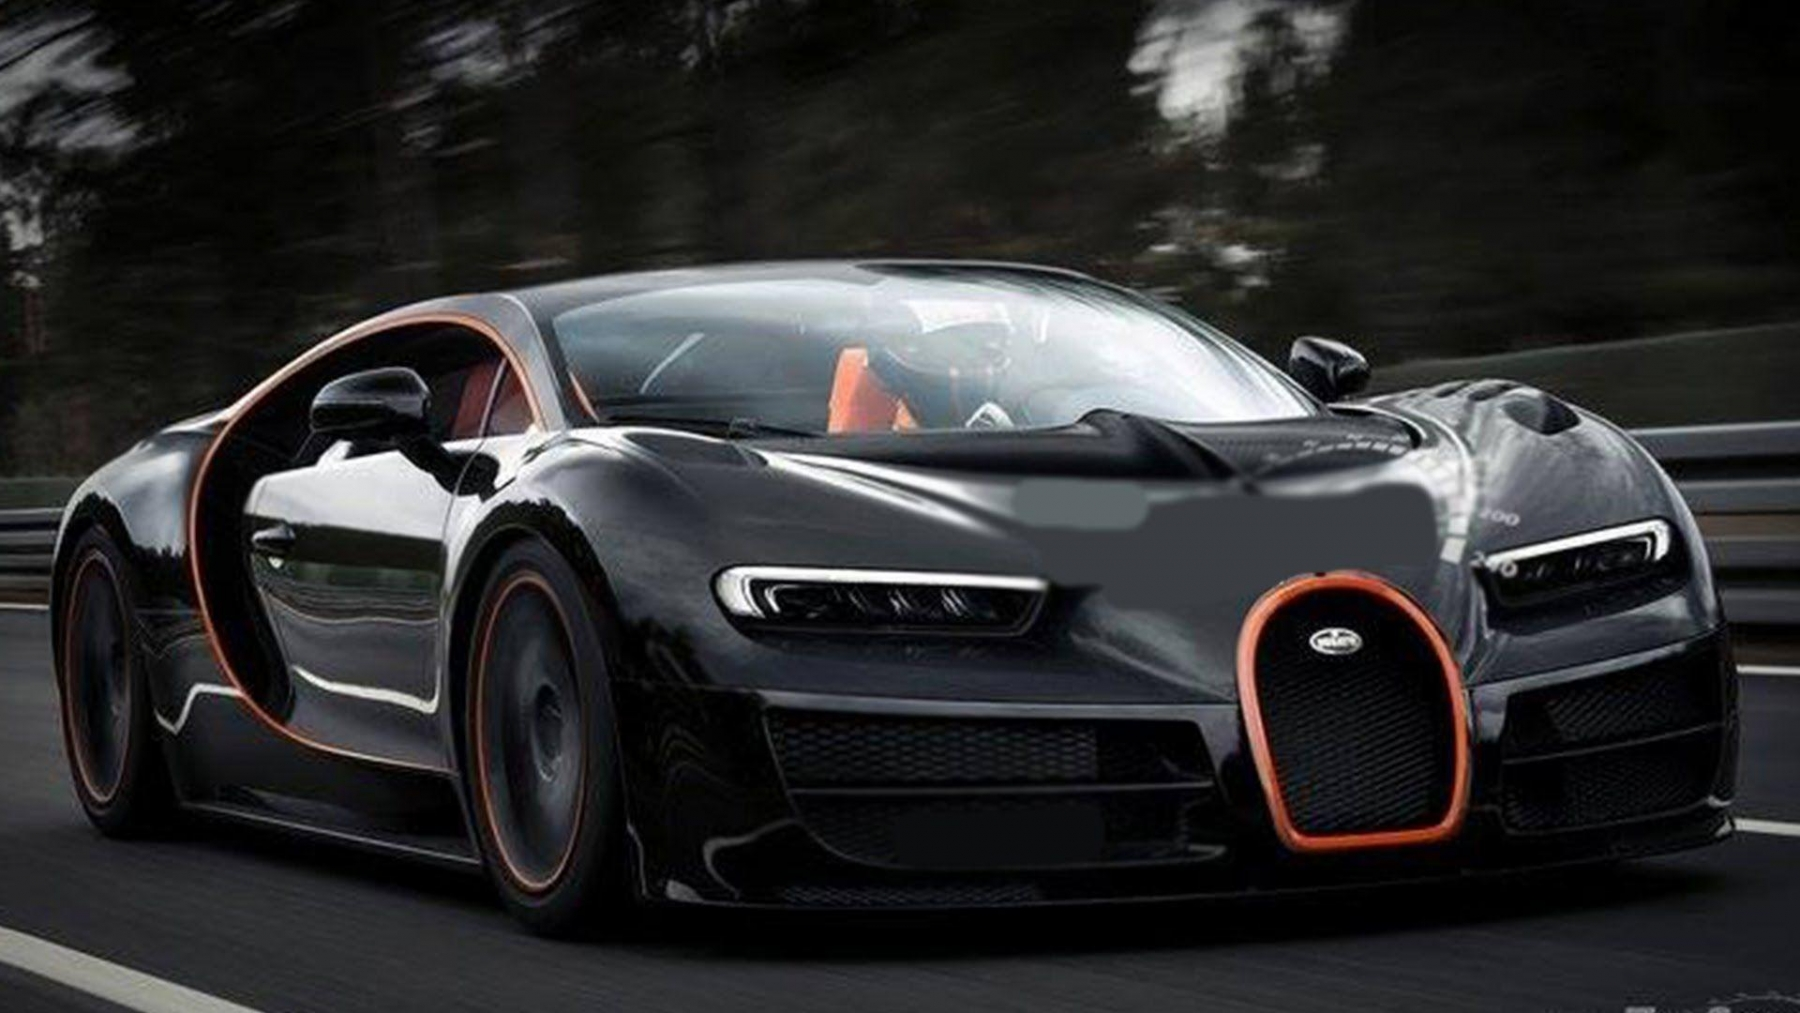 Hd Car Wallpapers Bugatti Chiron Hd Wallpapers Background Images Photos